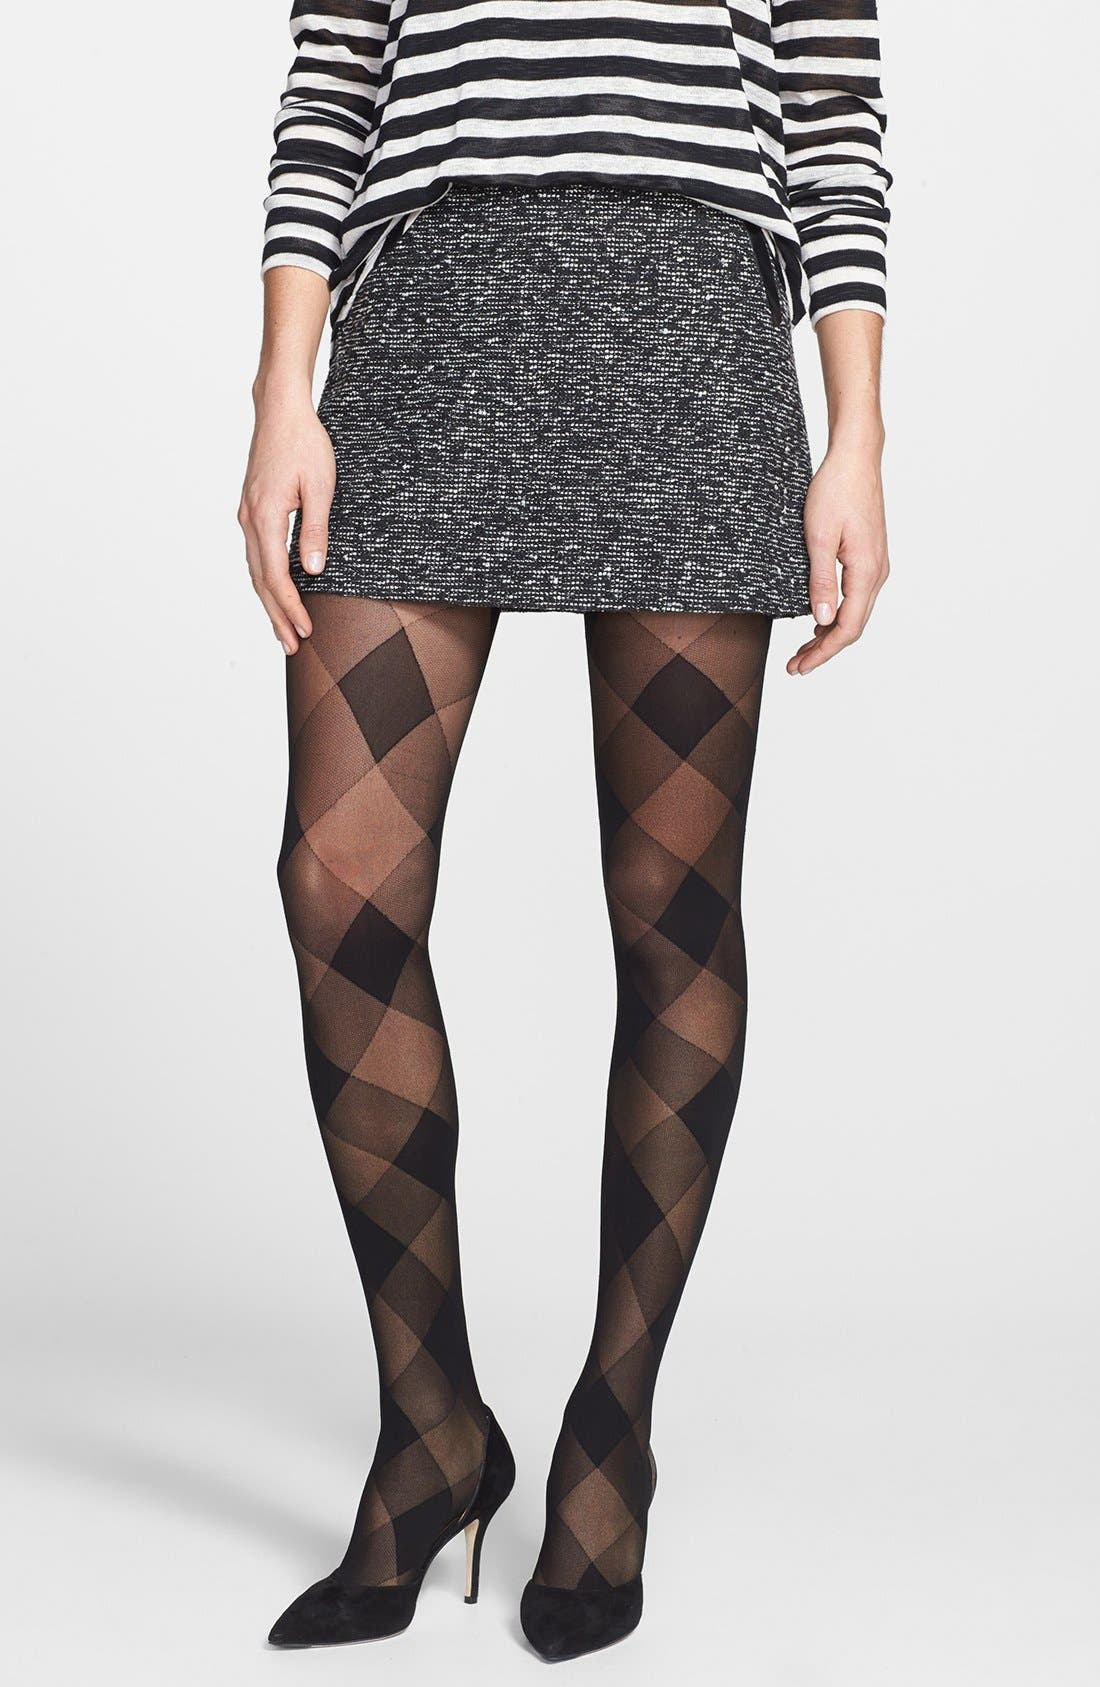 'Perfect Plaid' Tights,                             Main thumbnail 1, color,                             Black